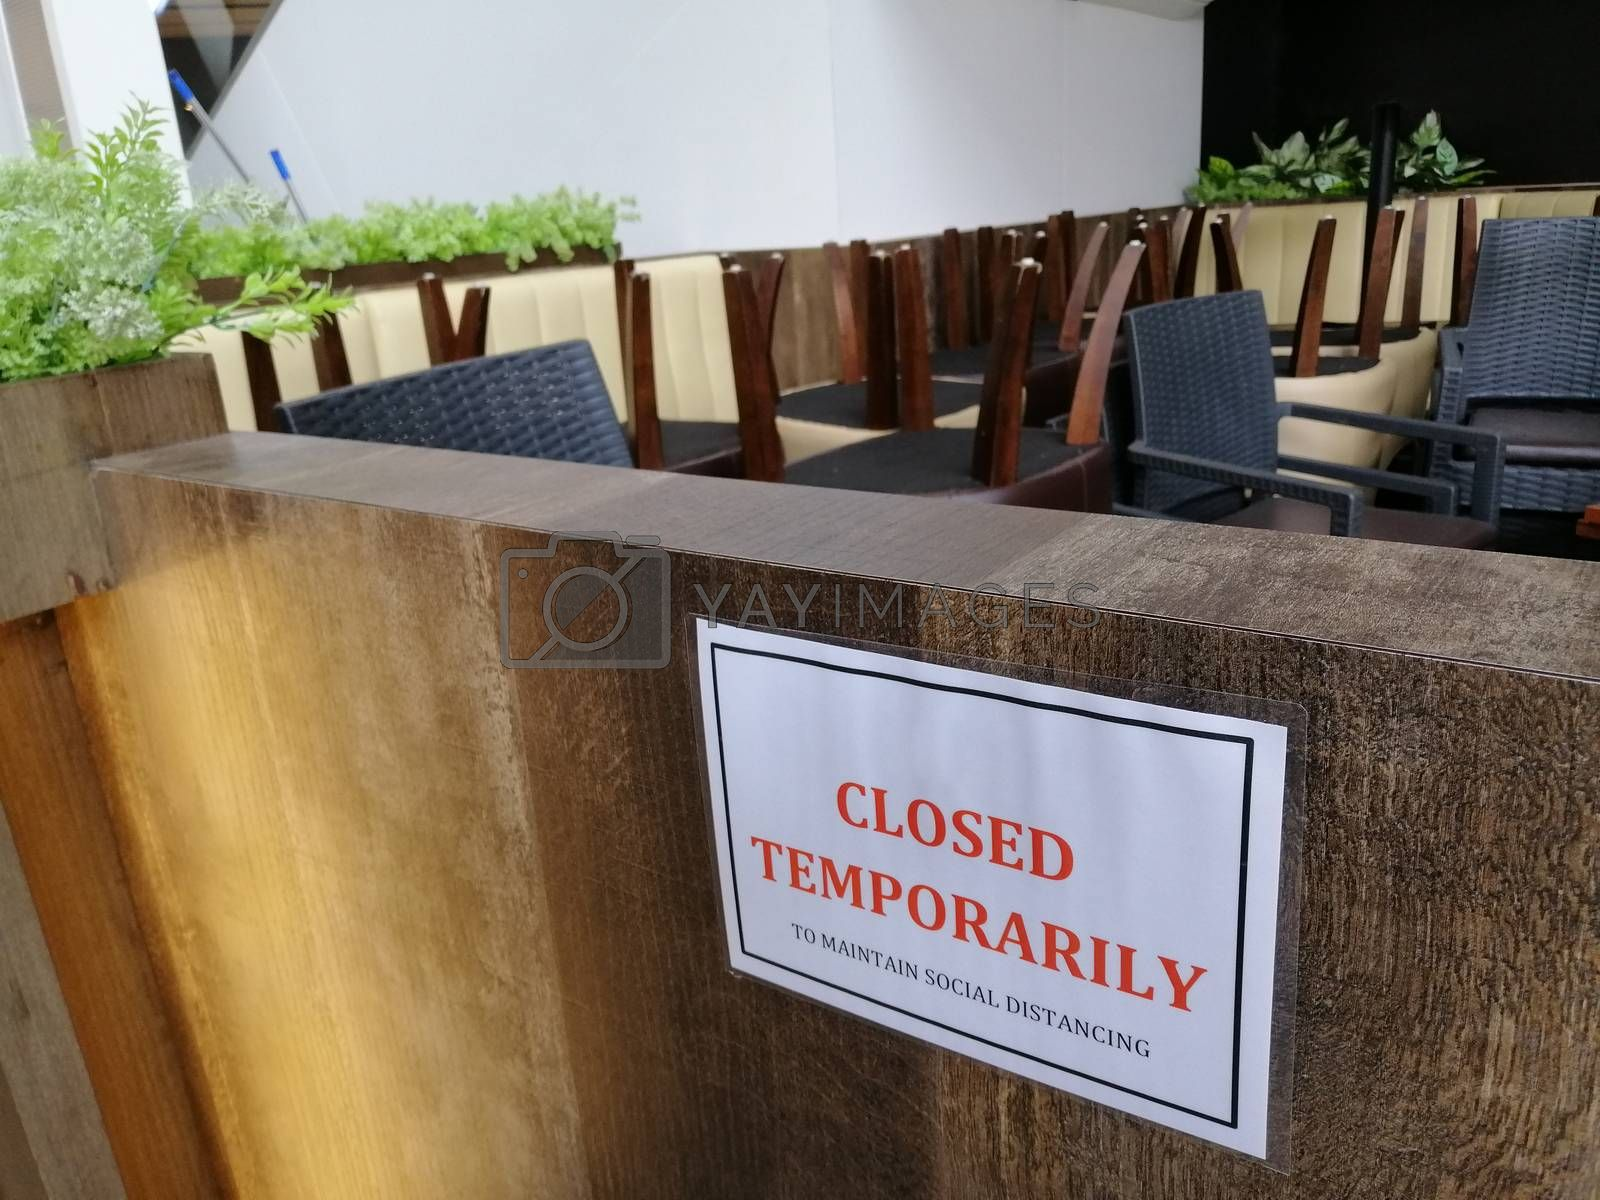 Closed temporarily - notice board on cafe ,  shut down business during coronavirus pandemic, covid-19 outbreak. Lockdown, isolation, small business bankruptcy concept.